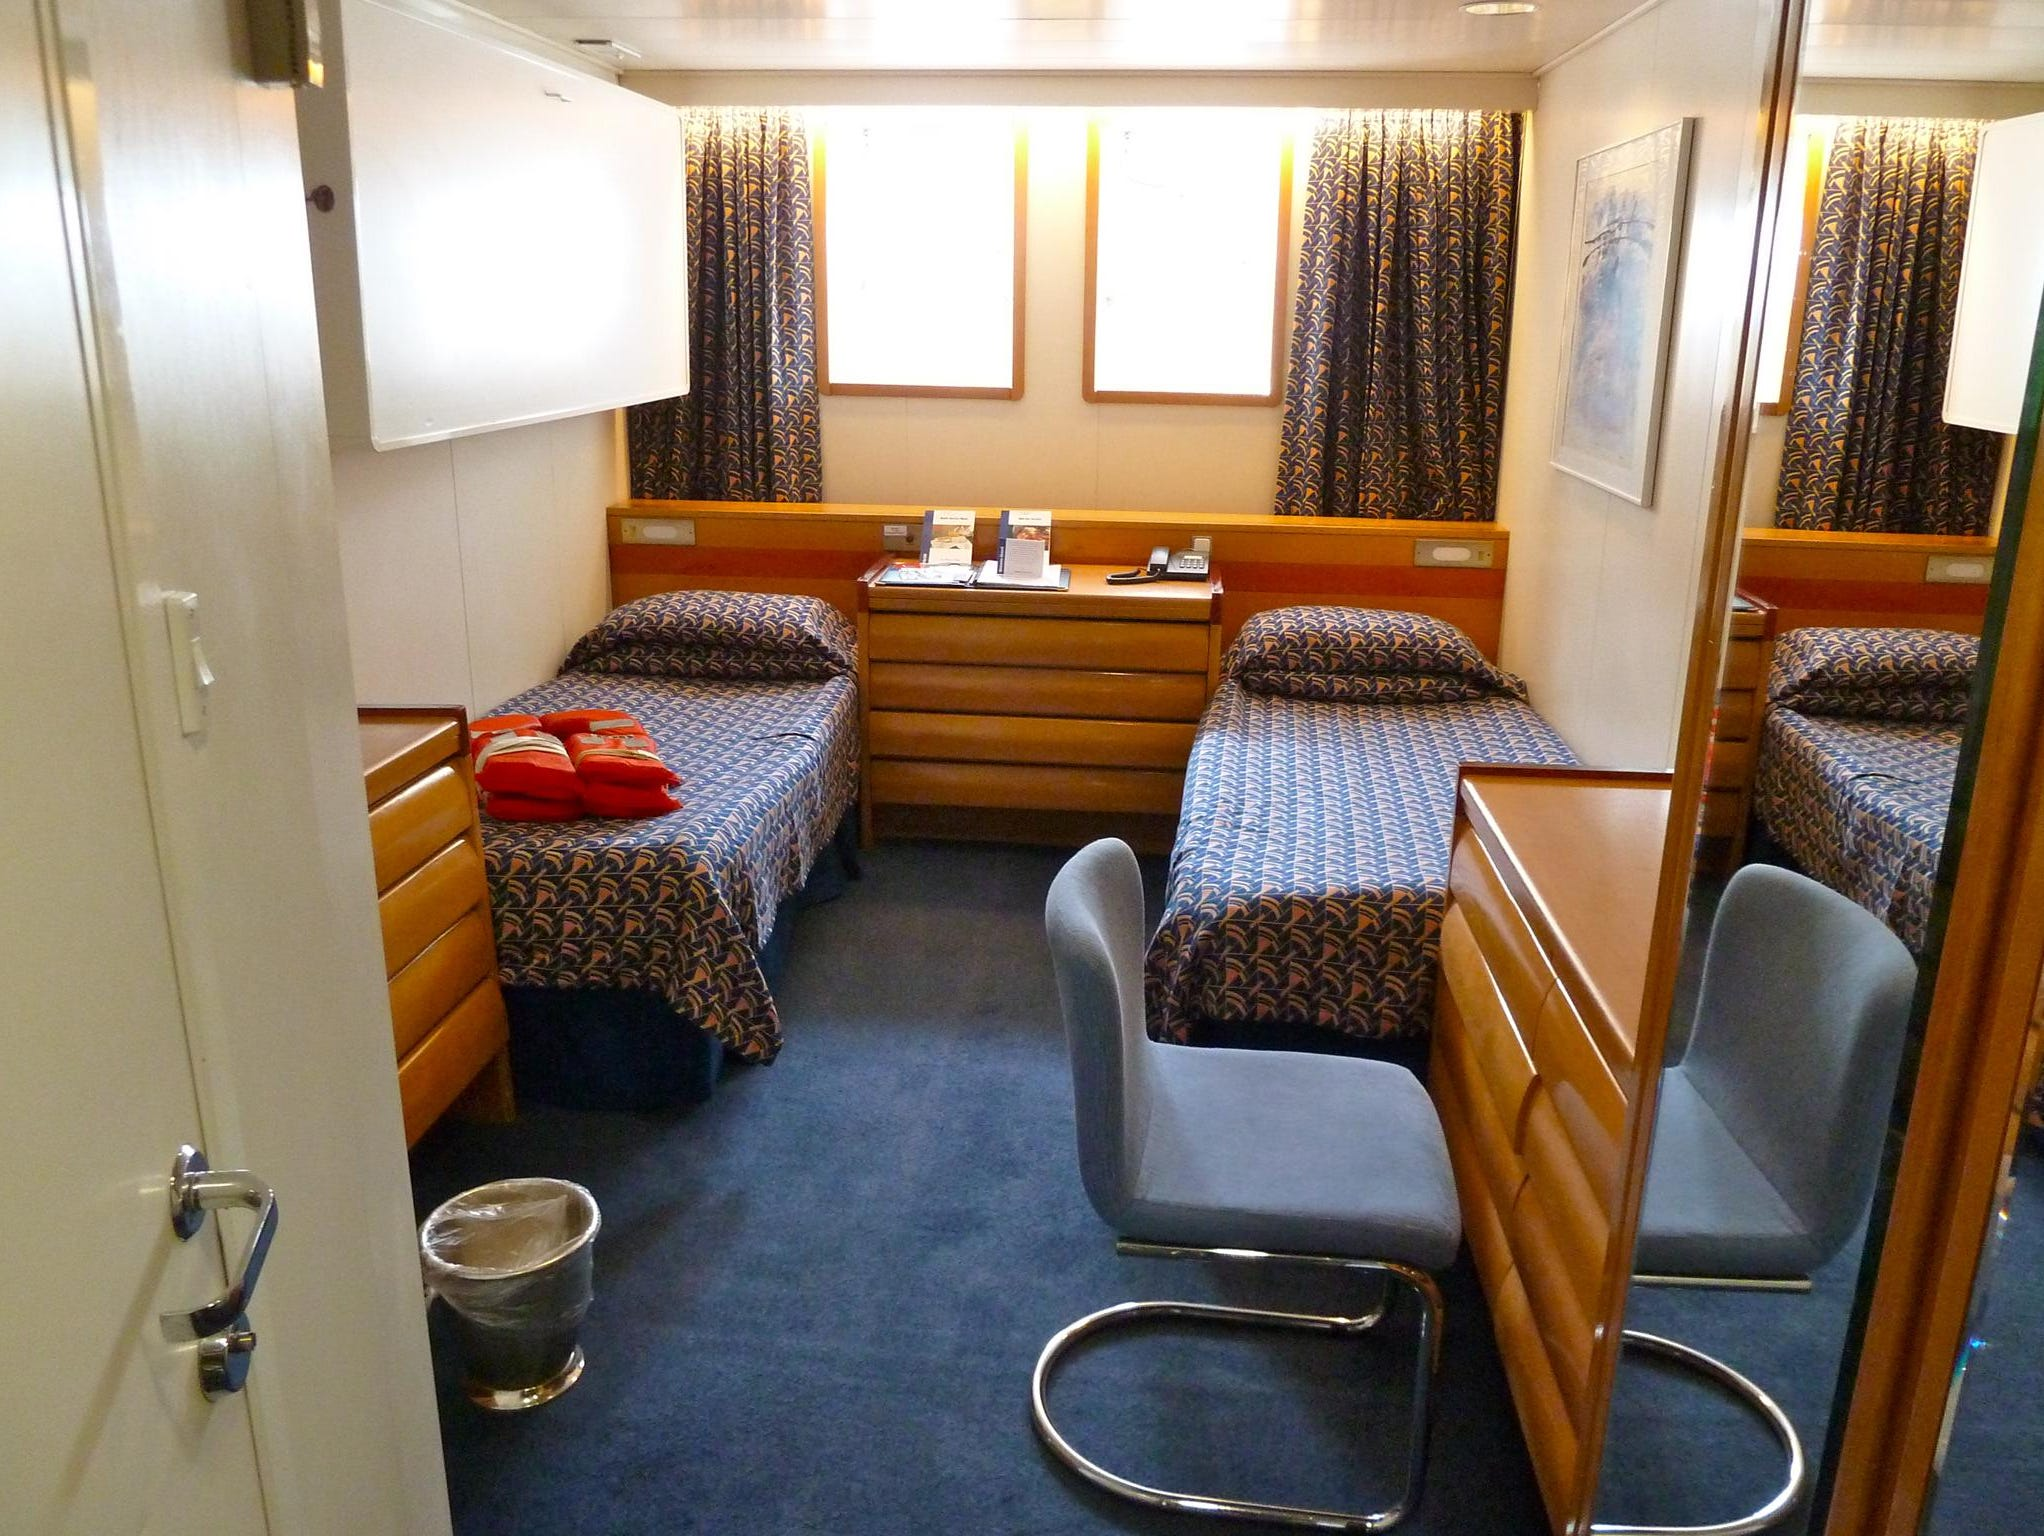 Category 7 Standard Twin Ocean View Cabins measure on average 126 square feet and feature ocean views through one or two portholes. This one has an additional pullman berth.